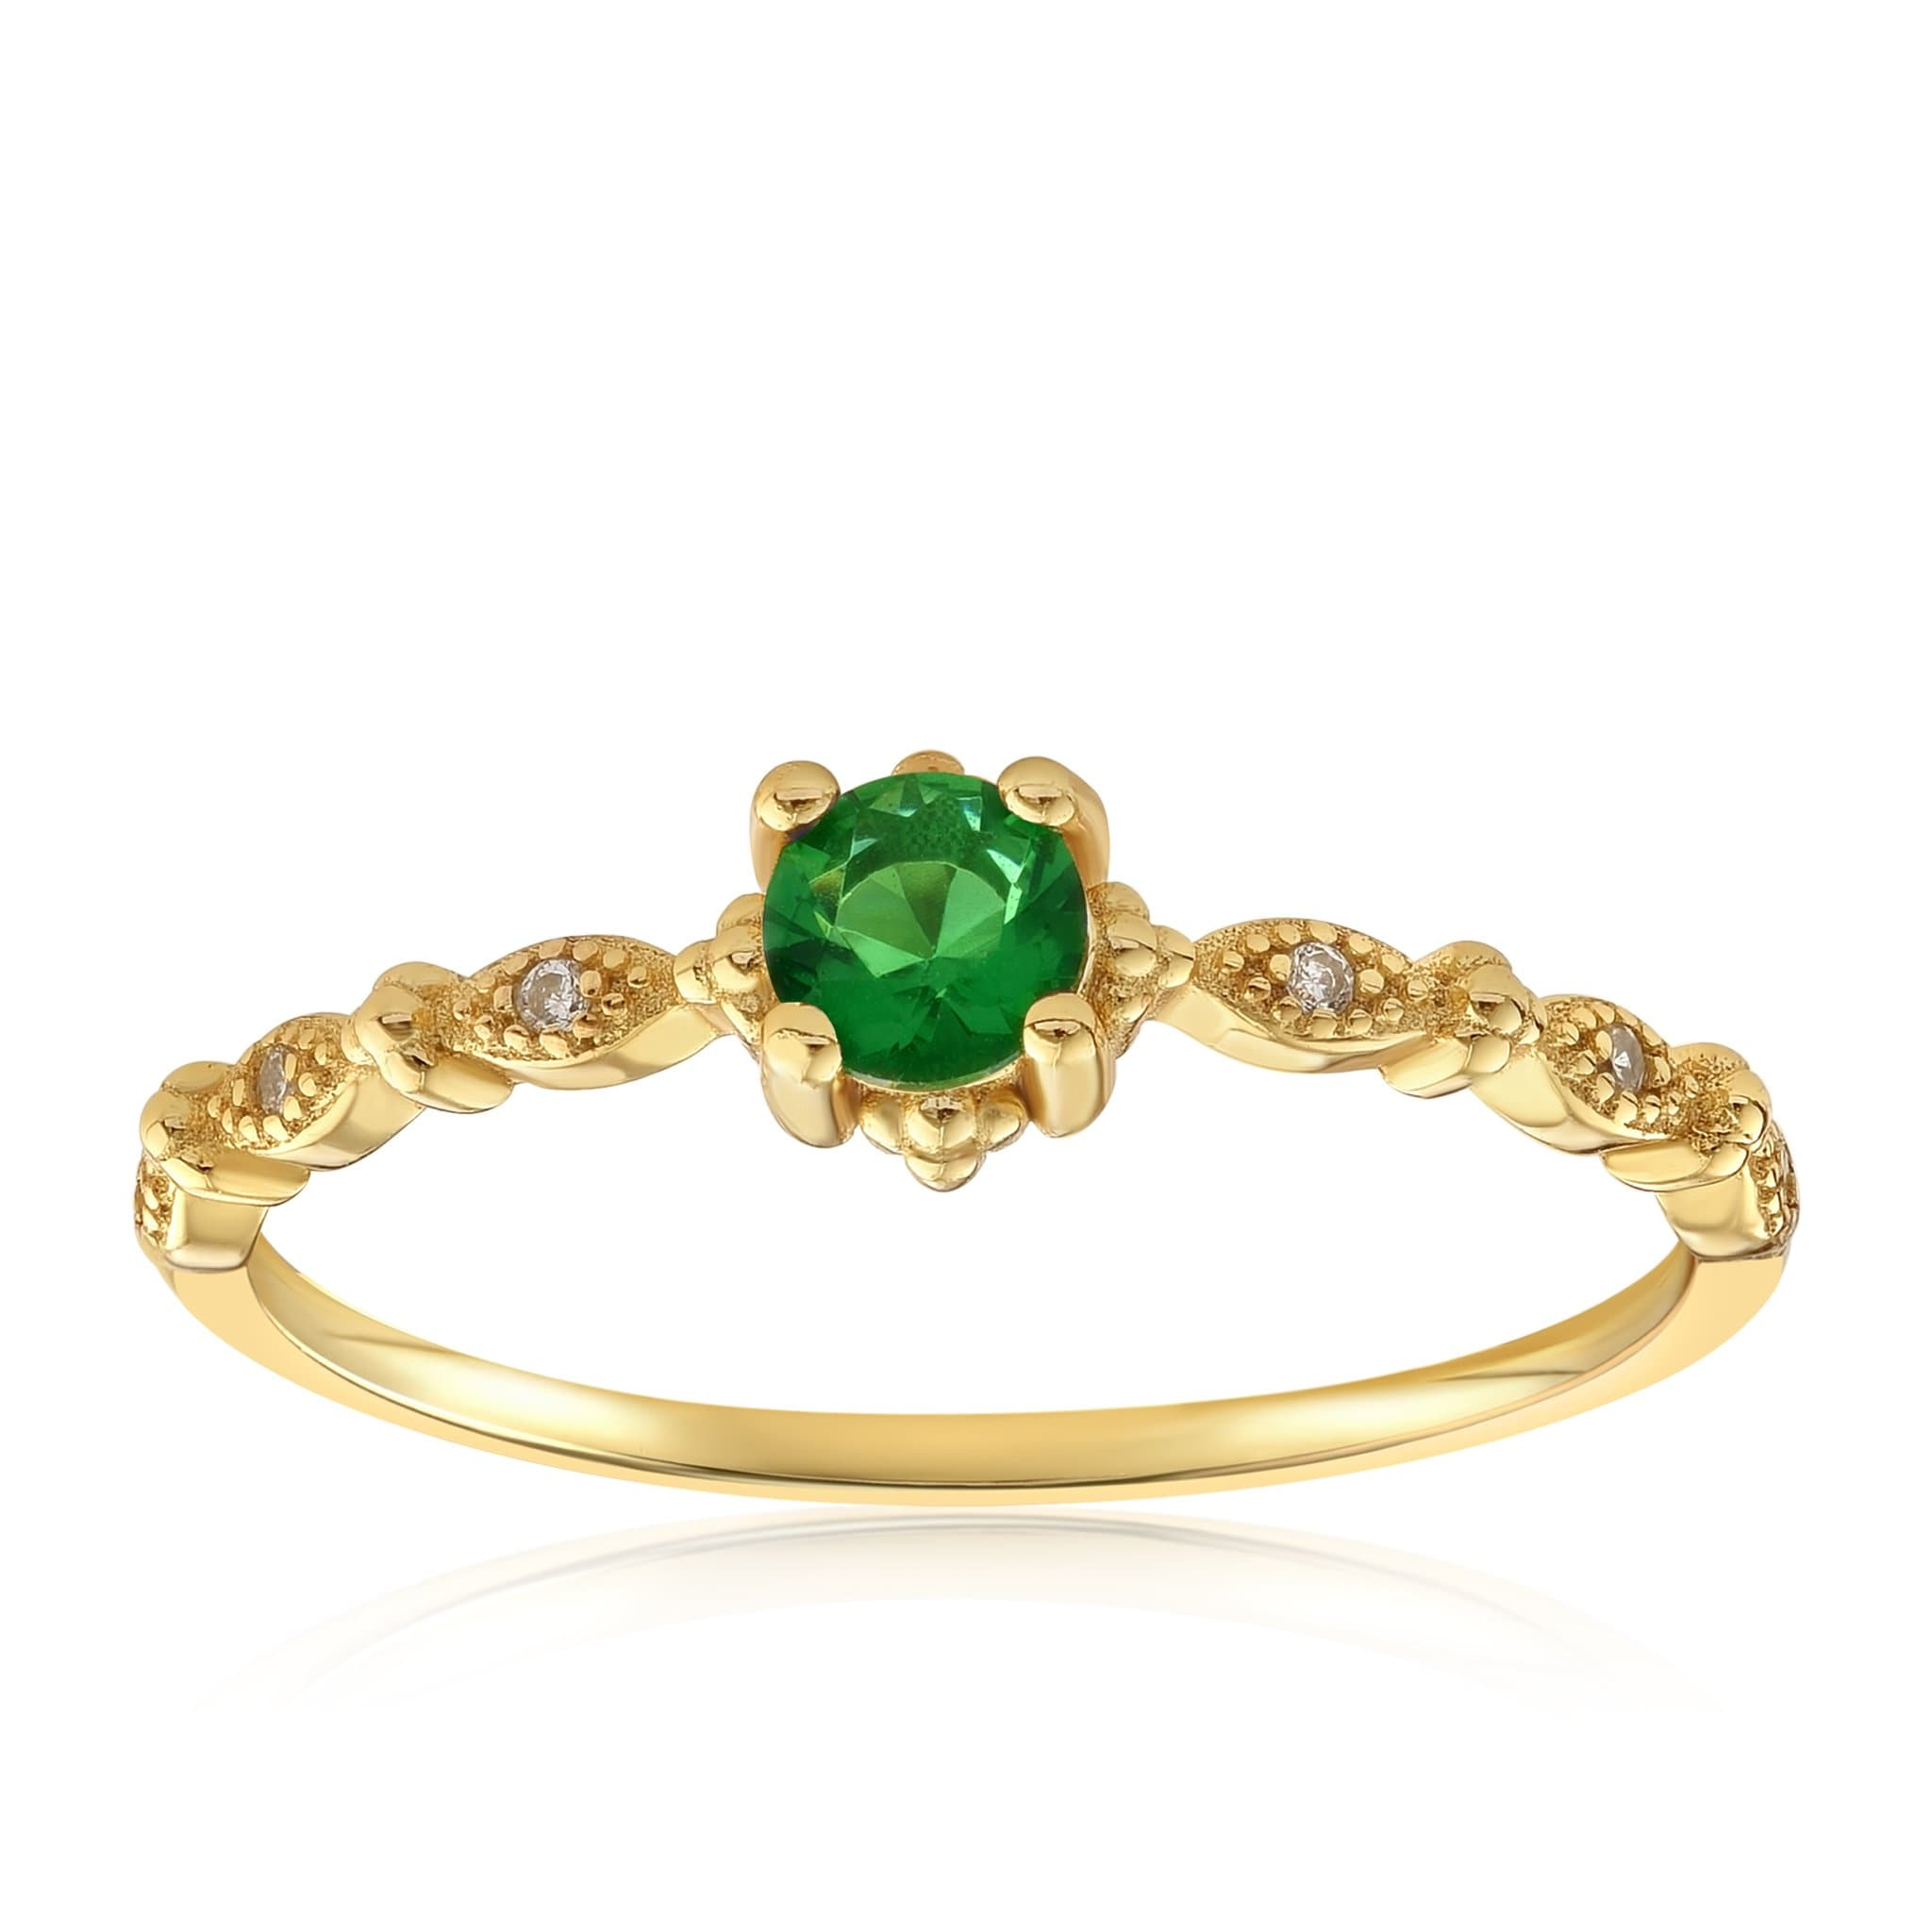 Garen Ring Green Gemstone - Front View Facing Up - 18K Yellow Gold Vermeil